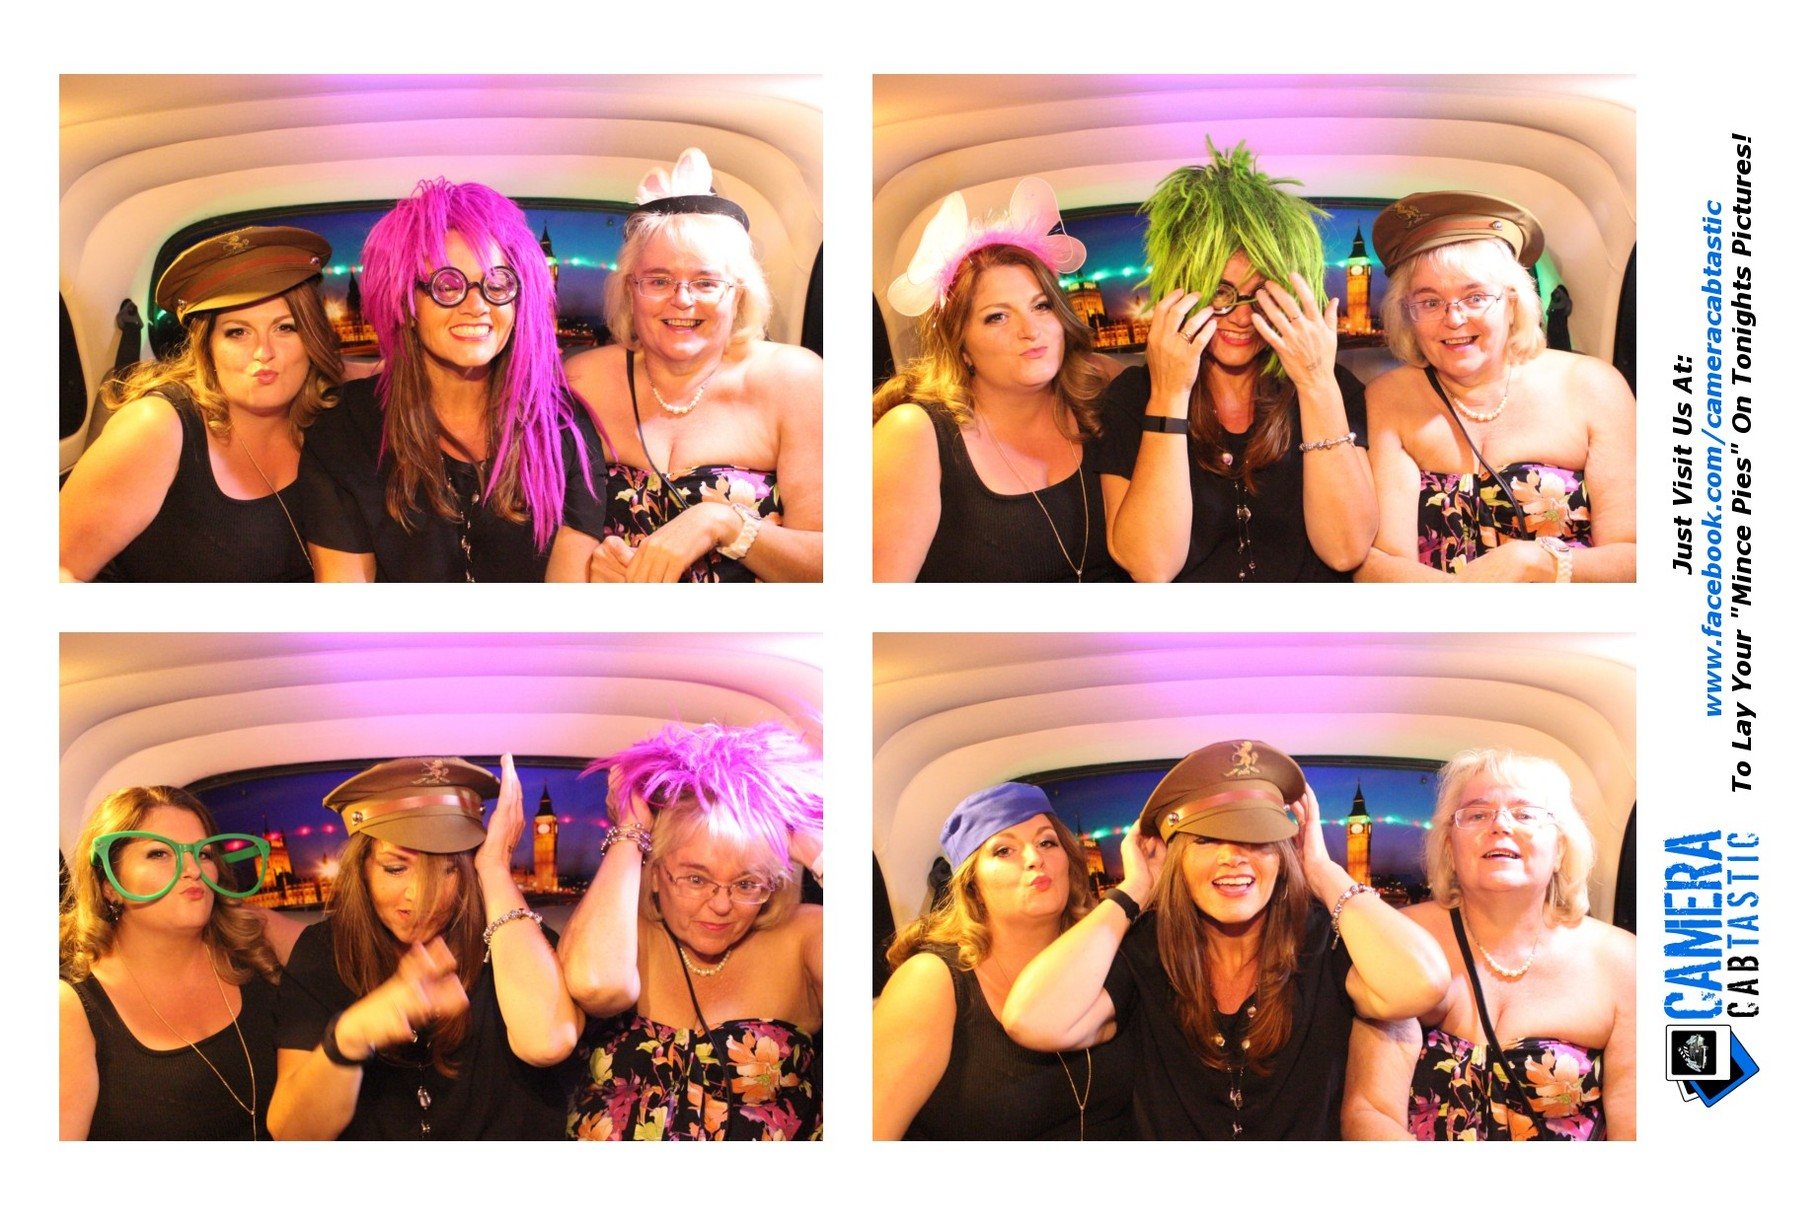 Taxi Photo Booth At LB1 Bar Crawley - Cabtastic Photo Booths